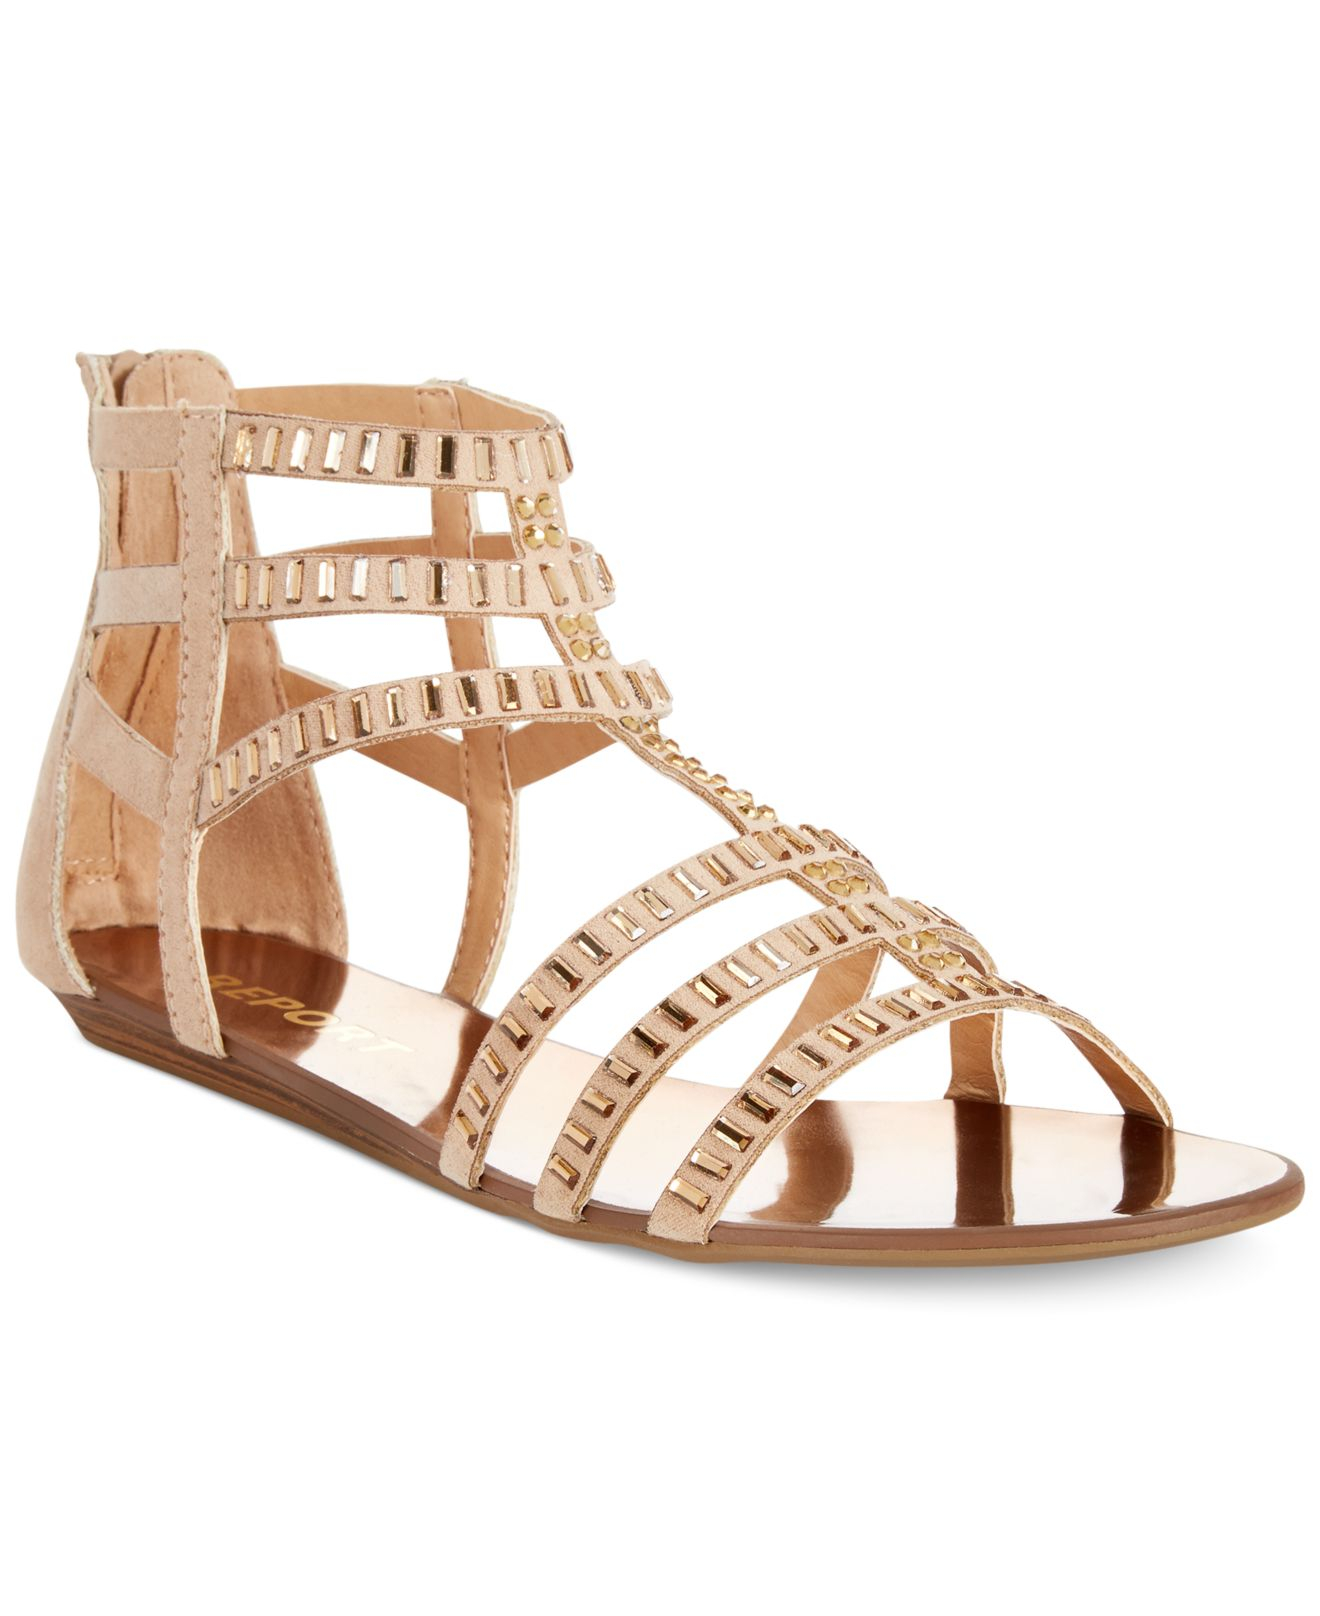 2035ded5fa8c77 Lyst - Report Layshia Rhinestone Gladiator Sandals in Natural